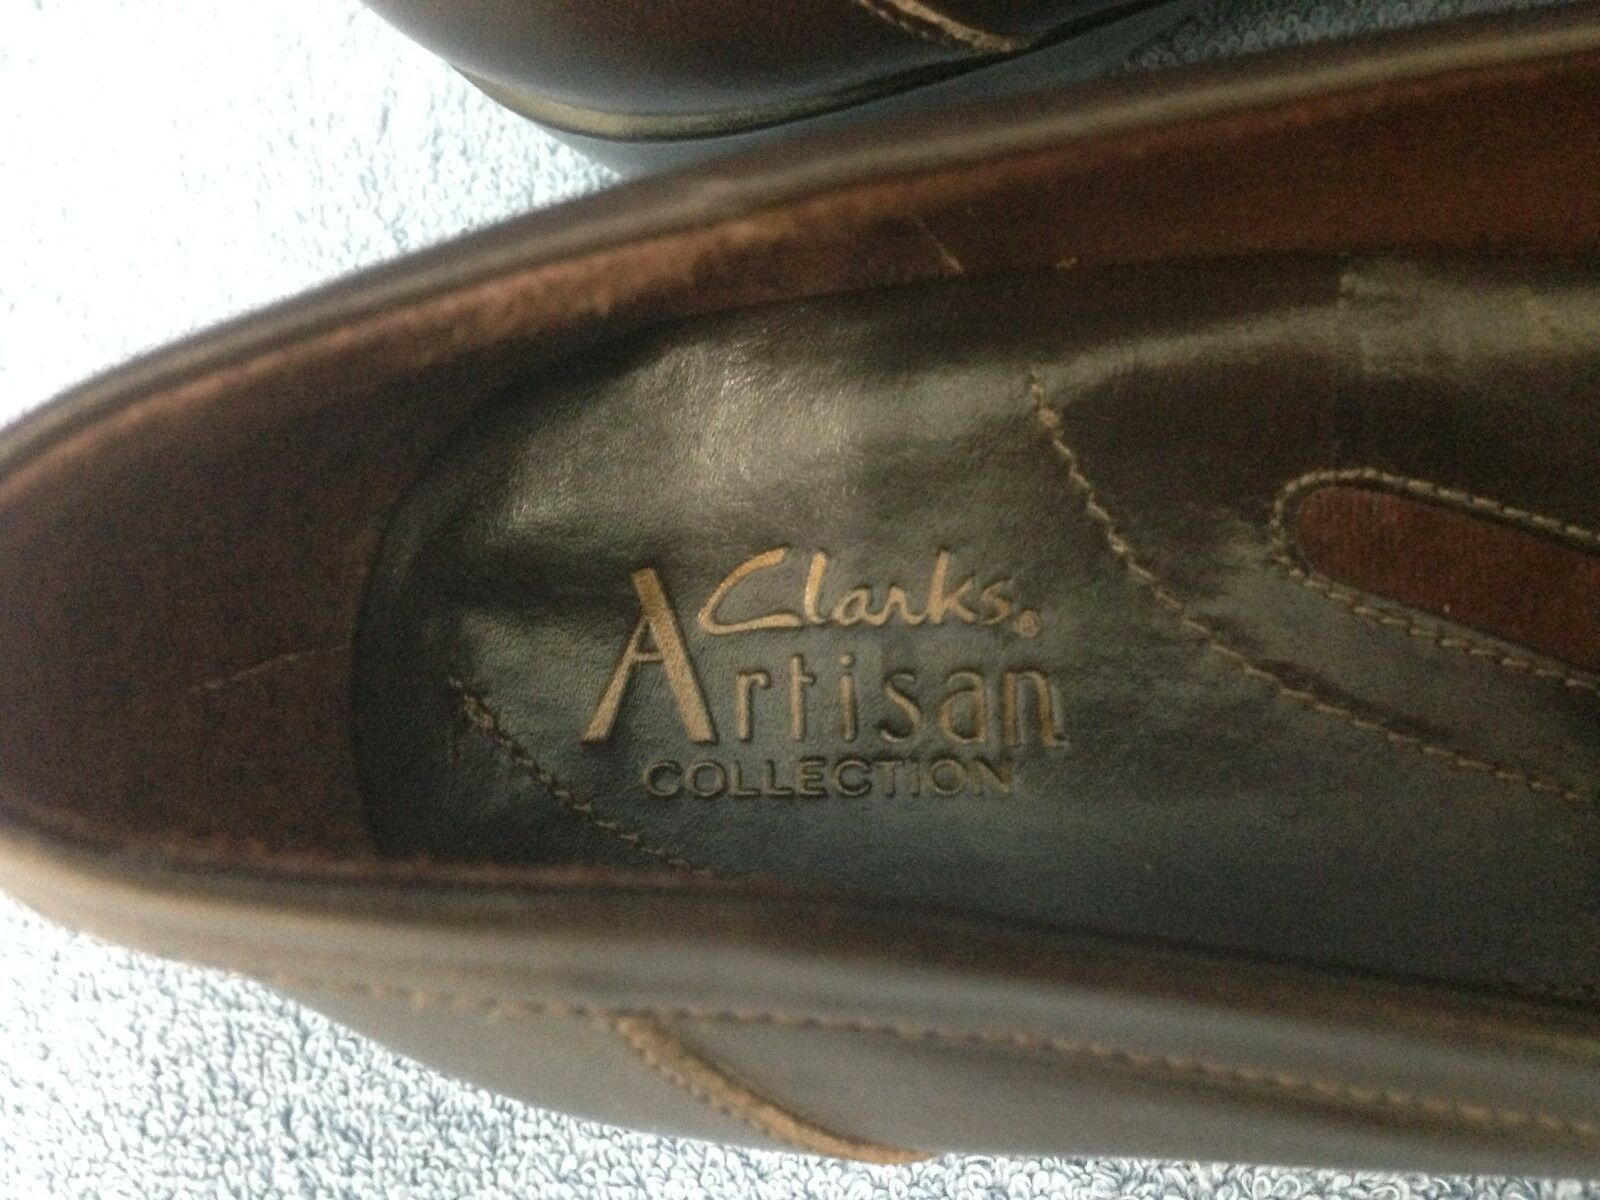 Clarks Artisan Collection Shoes -Brown Leather Women's Size 8.5 M